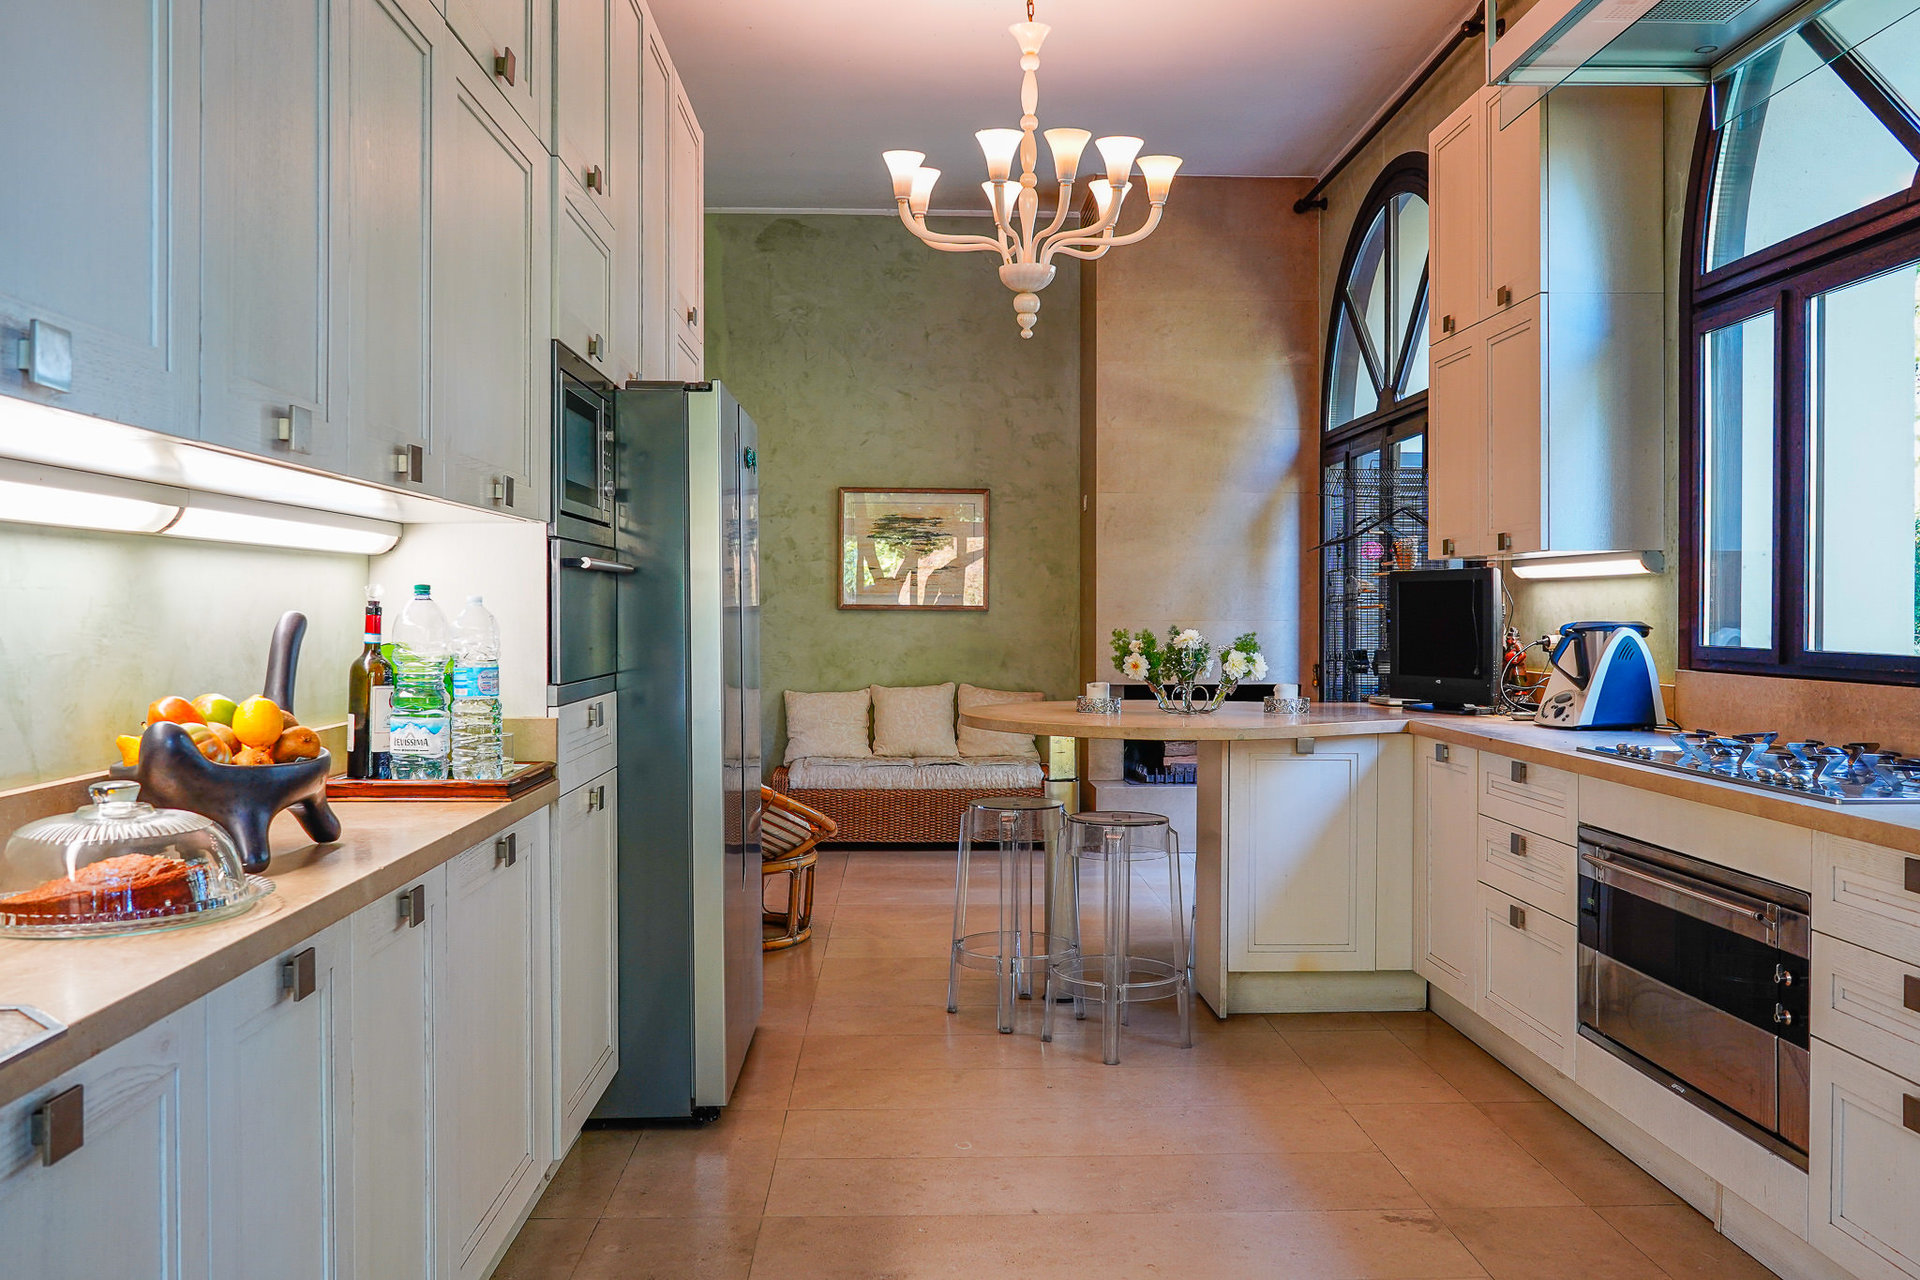 Period villa with park for sale on Ticino River - large kitchen